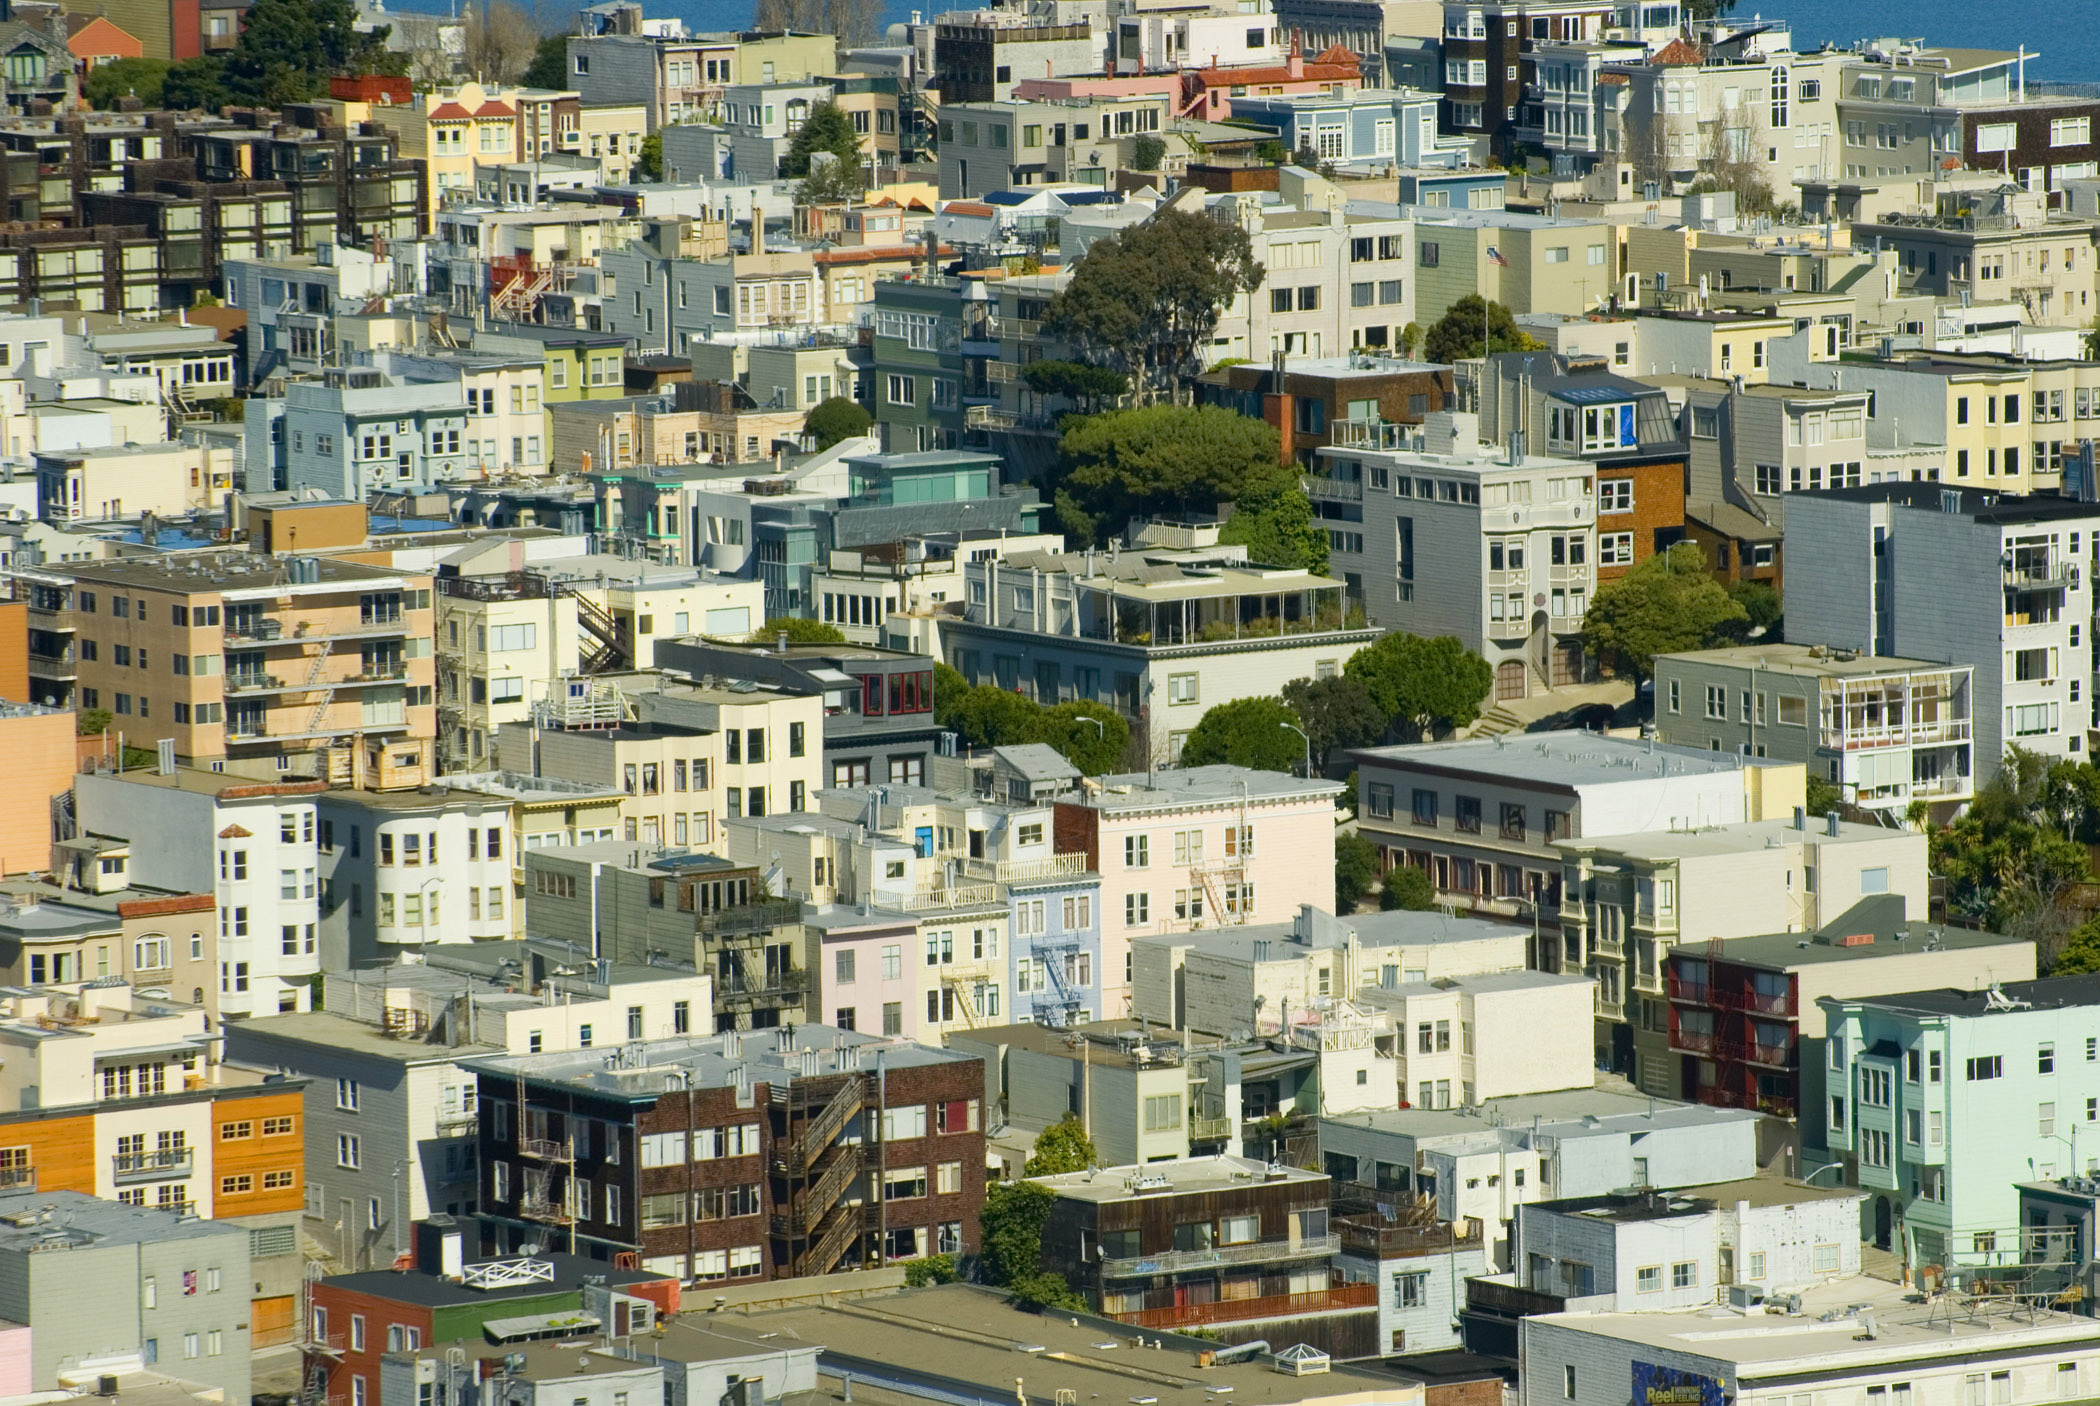 Various City Building Rooftops in San Francisco. Captured in Aerial Extensive View.